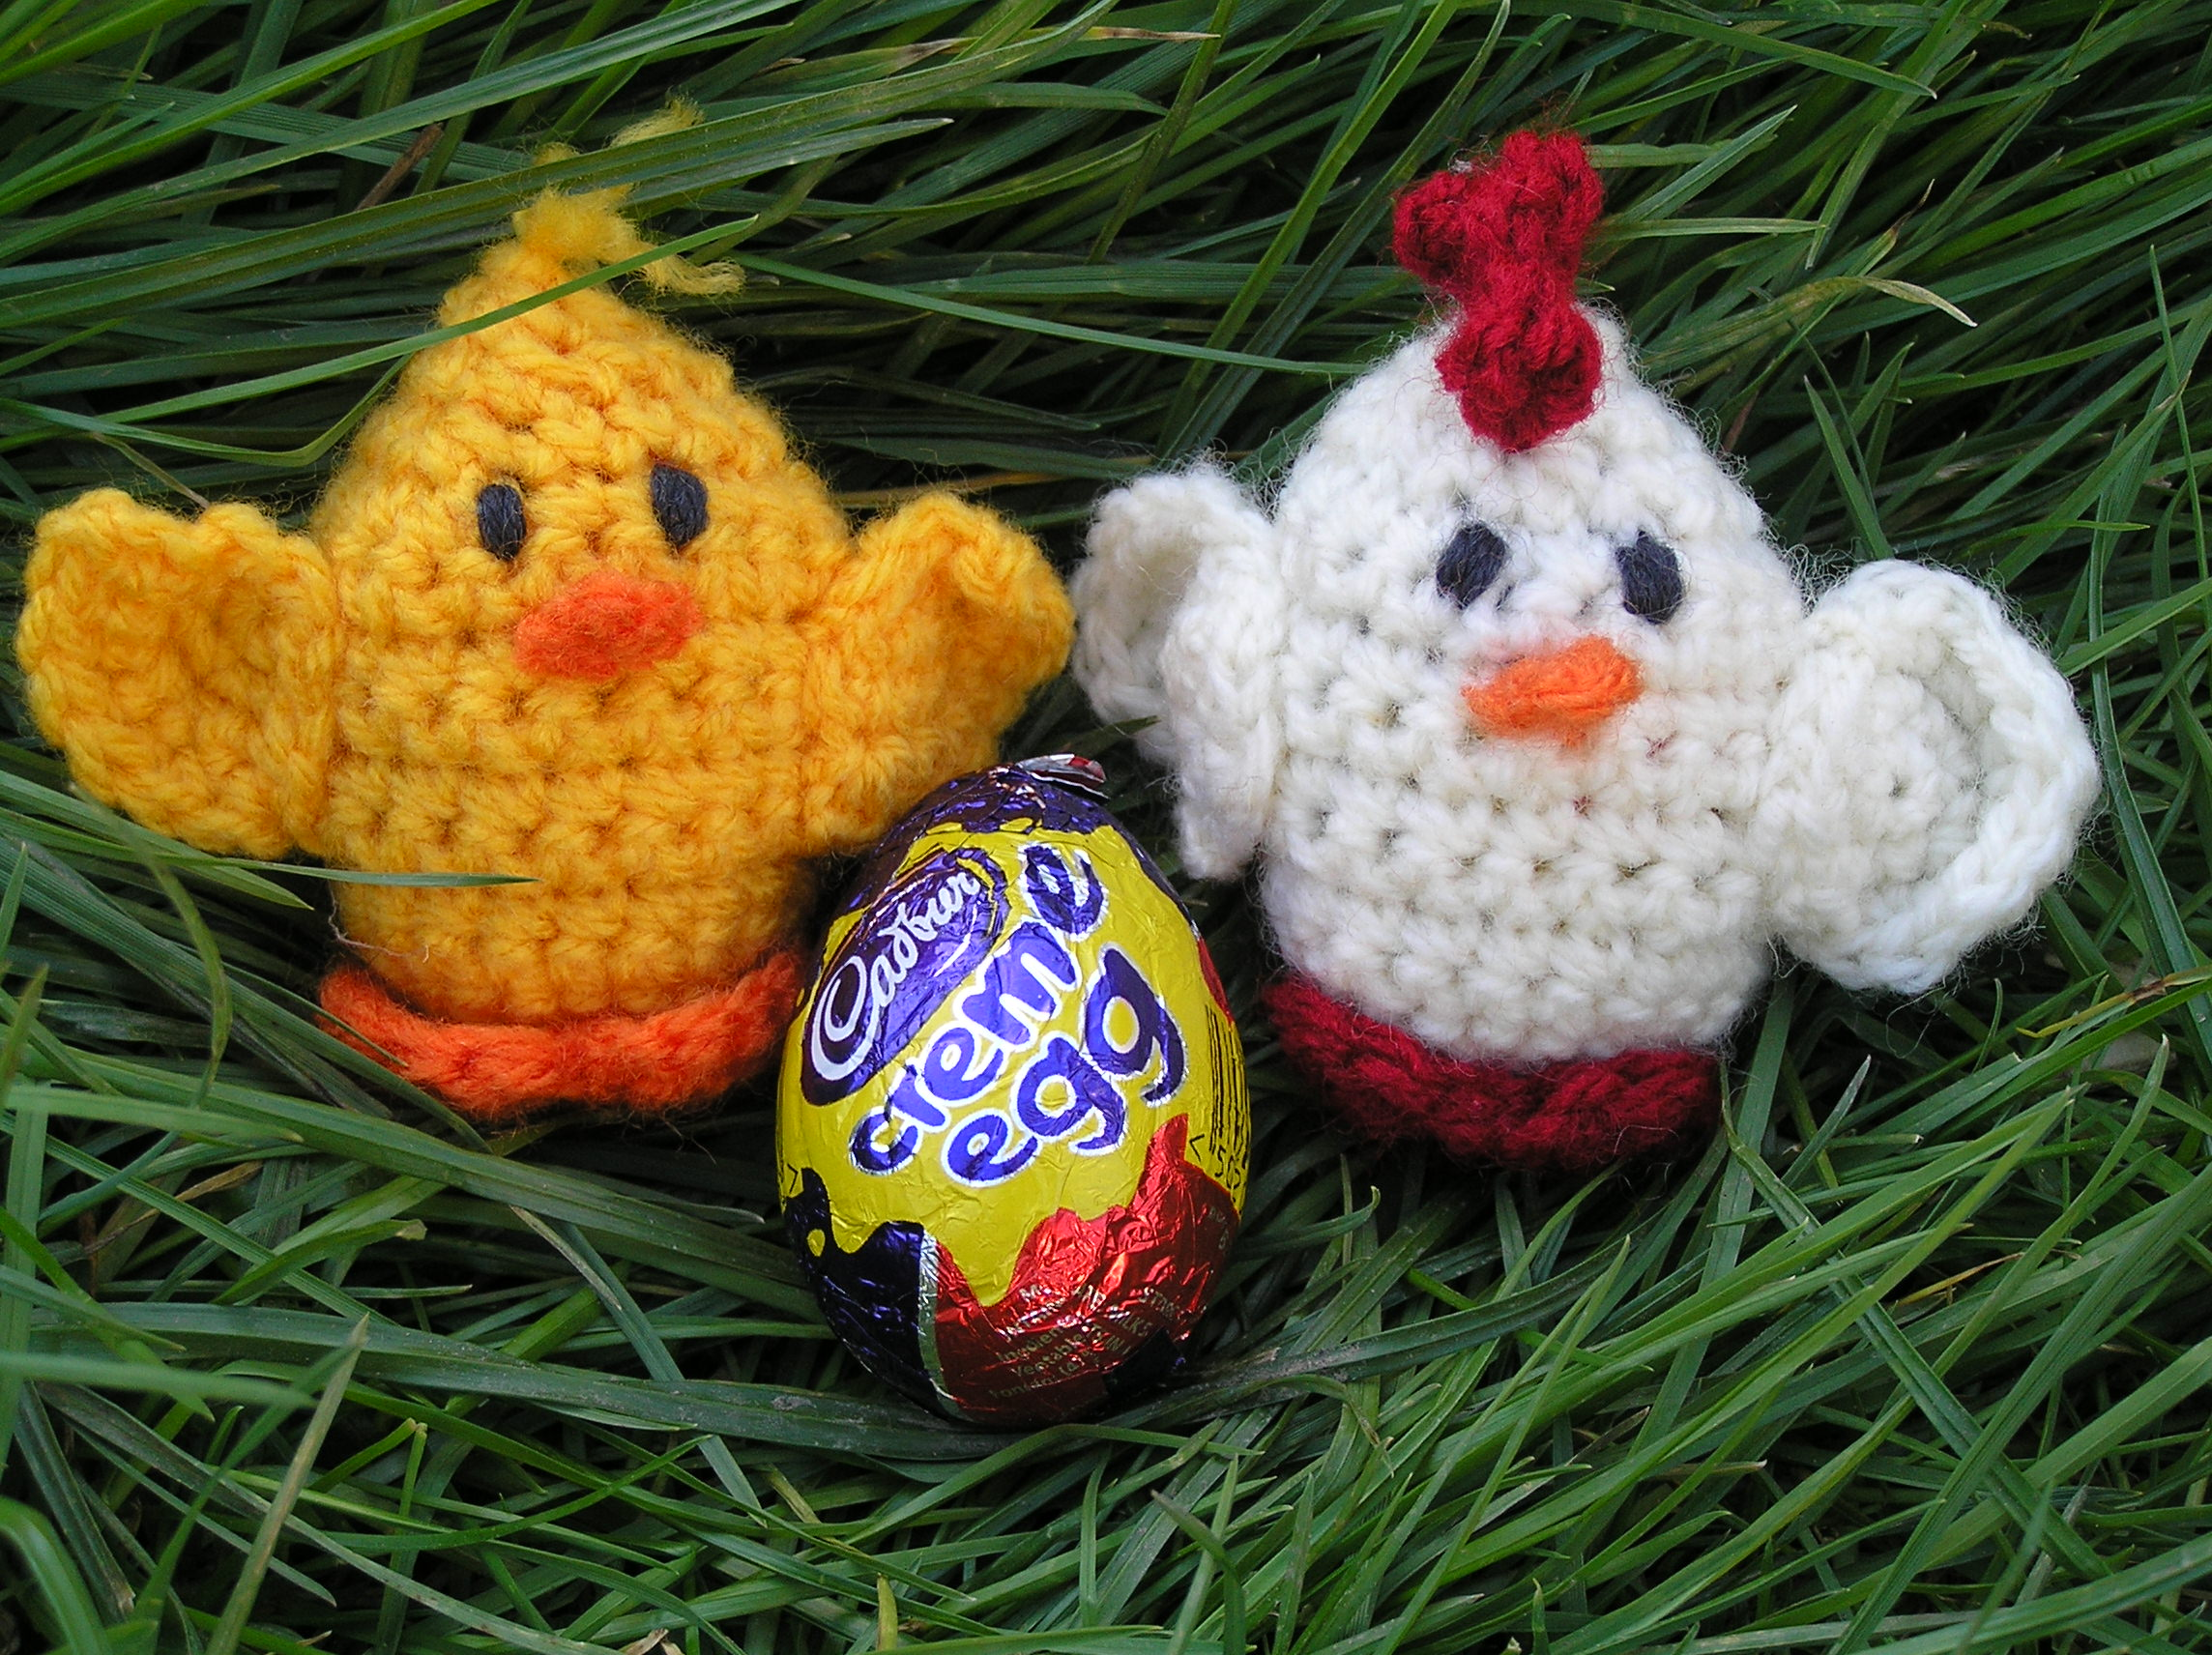 Creme Egg Creatures SpinStars Blog